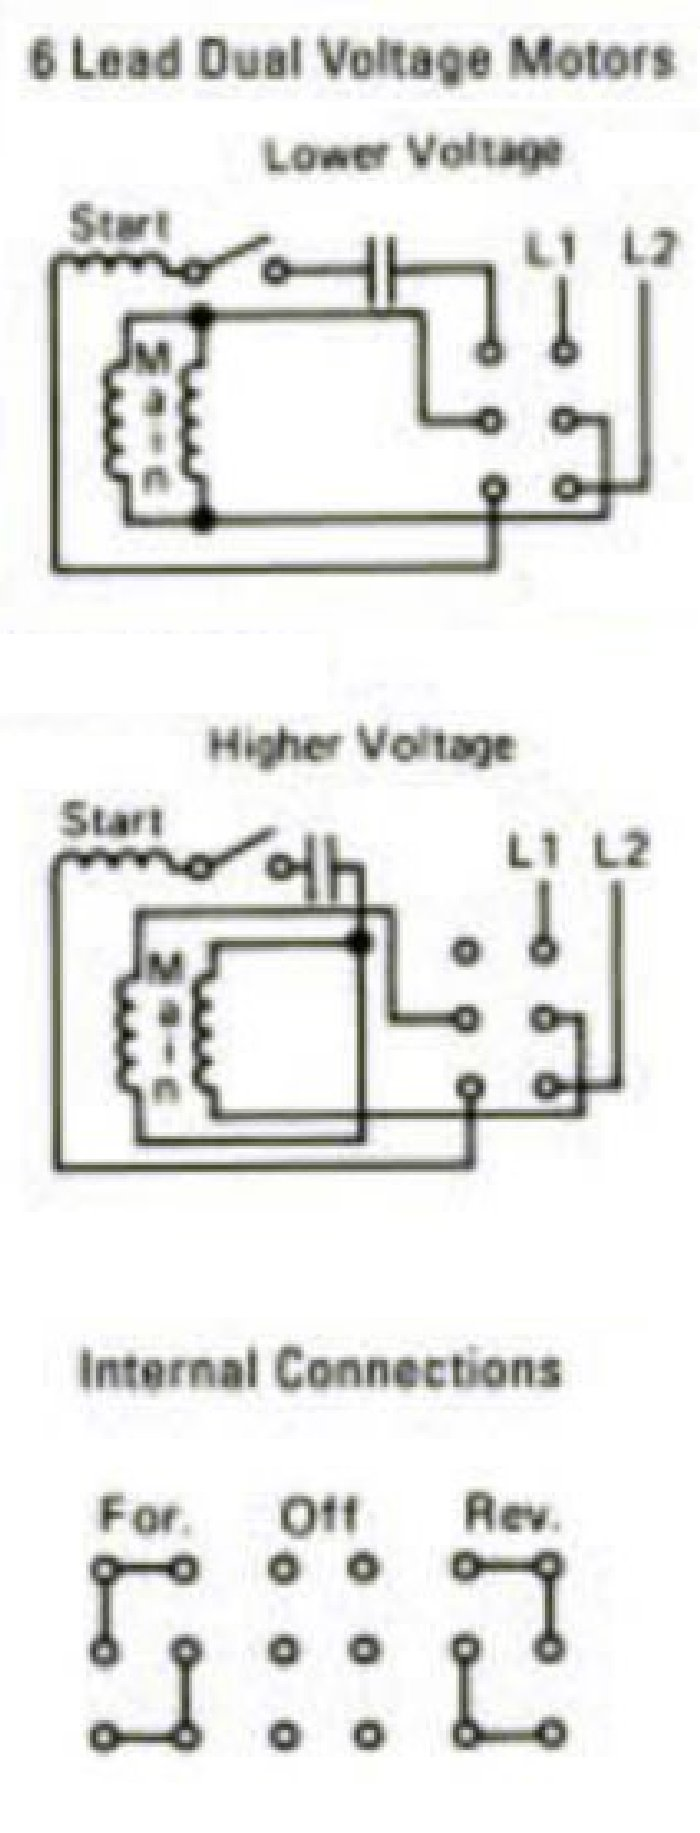 Generous 6 Lead Motor Wiring Gallery - Electrical and Wiring Diagram ...